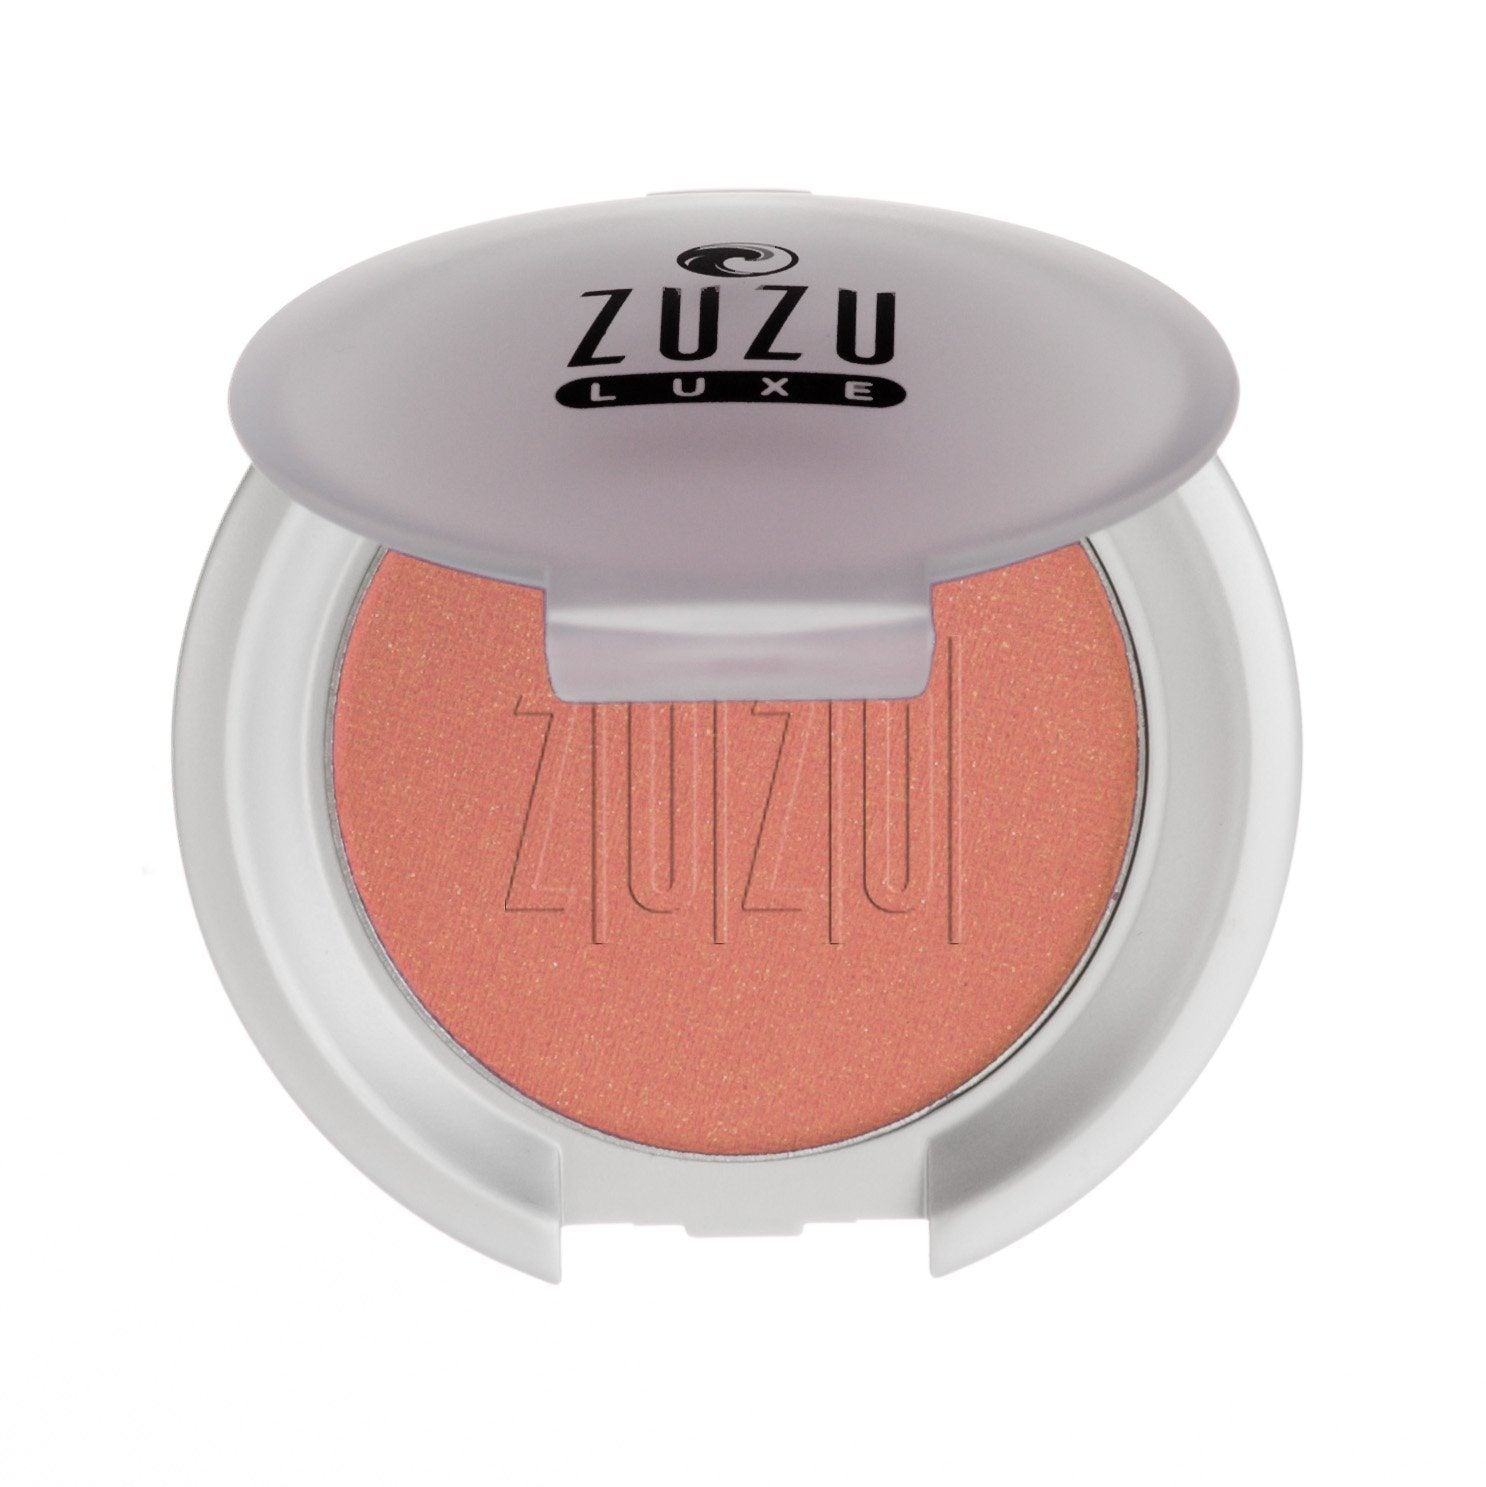 Beauty & Skin Care,Food & Drink - Zuzu Luxe - Blush, Sunset, .11oz